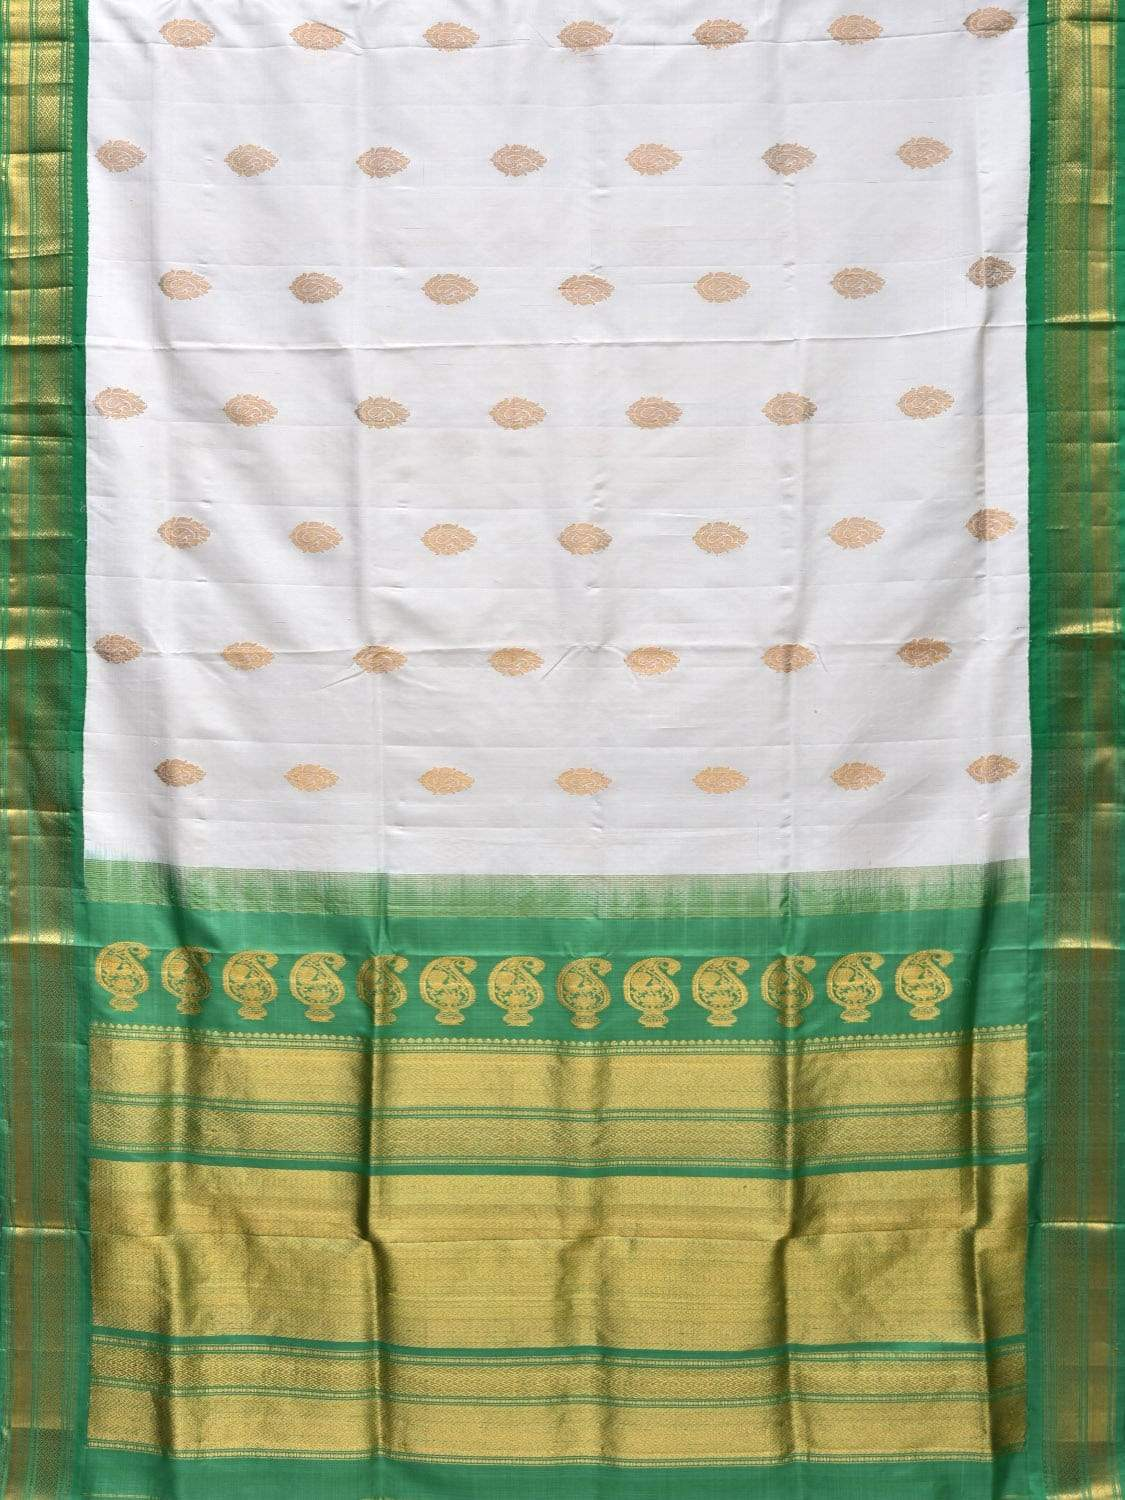 White and Green Gadwal Silk Handloom Saree with Body Buta and Mango Pallu Design g0254